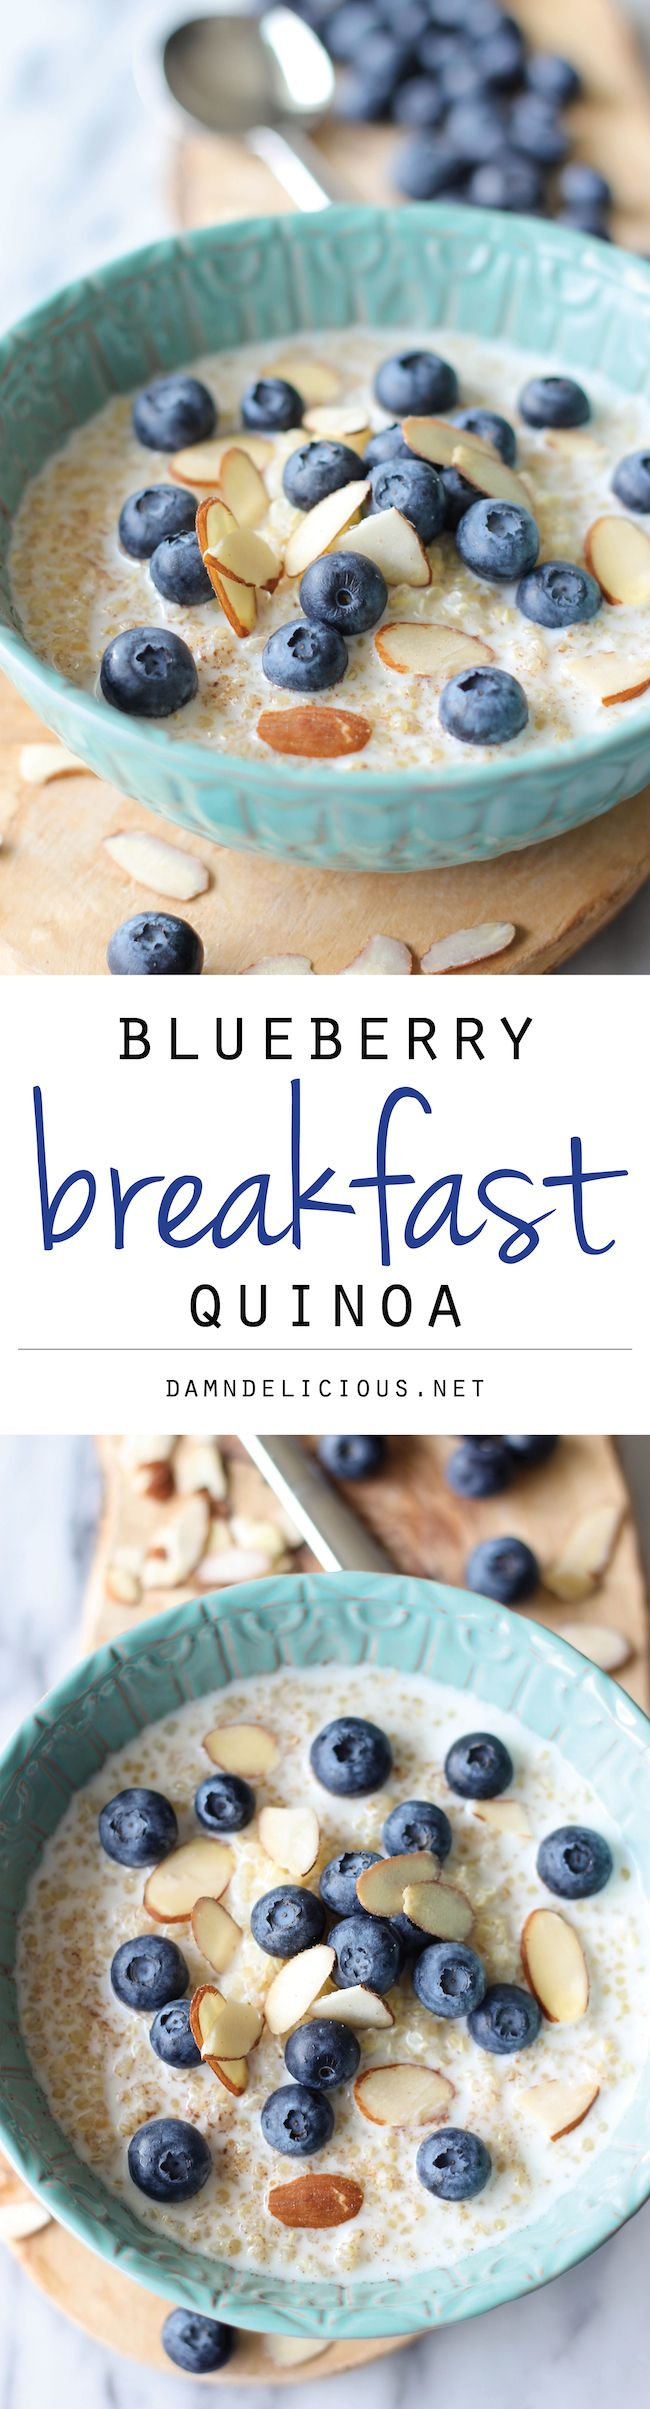 (Sweeten with stevia or xylitol, use phase-appropriate milk, 1 cup almonds and 4 cups blueberries to serve 4) Blueberry Breakfast Quinoa - Start your day off right with this protein-packed breakfast bowl!